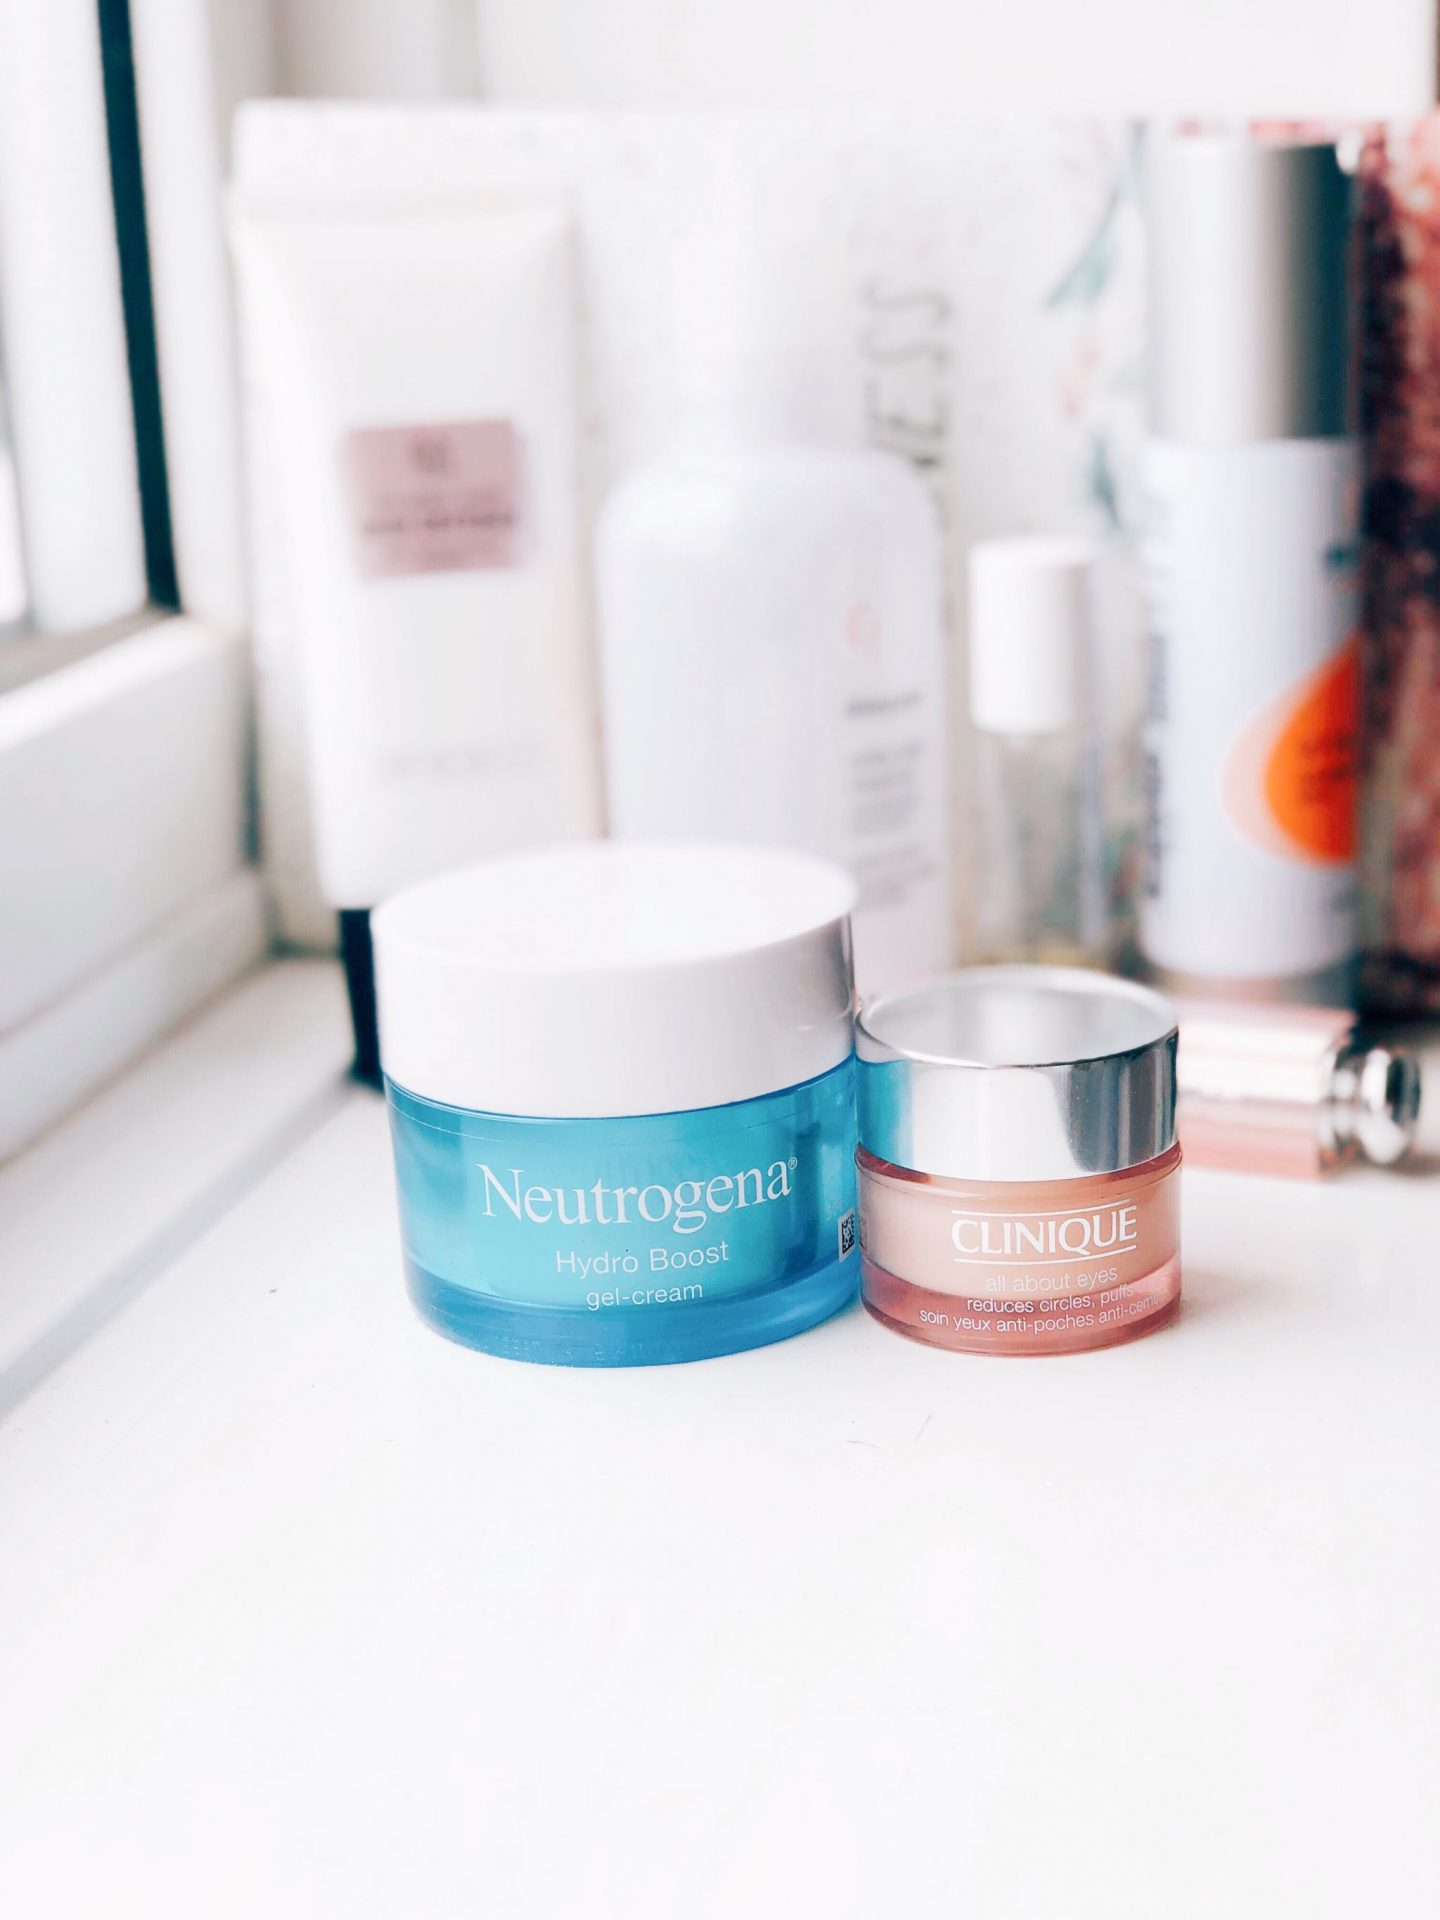 netrutgena hydro boost gel cream clinique all about eyes